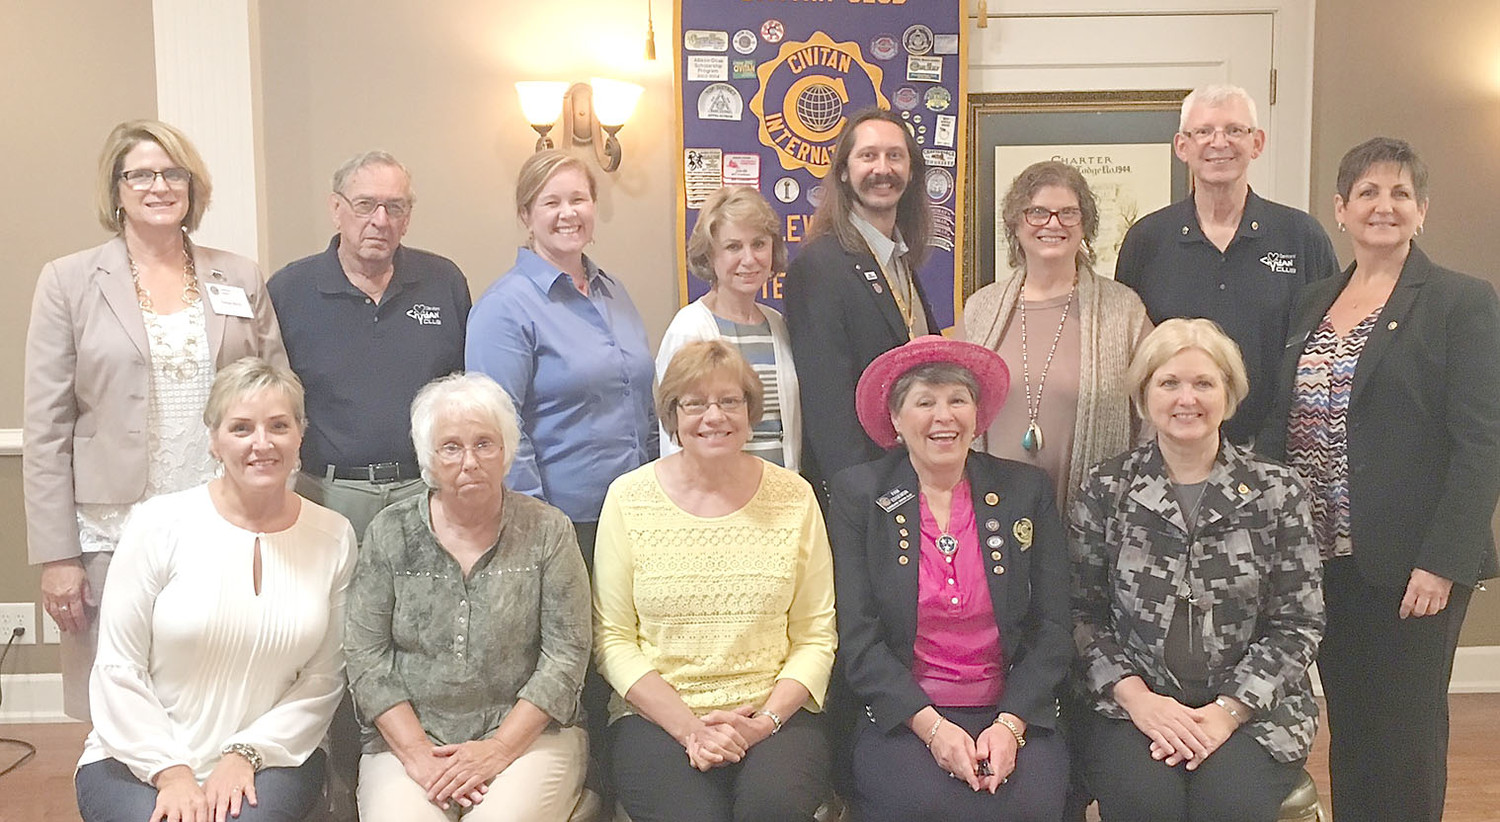 Officers and board members for the Cleveland Civitan Club 2017-2018 year were recently installed by Nathan Higdon, Civitan Appalachian governor.  From left, front, are Lee Tate; Luci Zwierzynski; Joan Brown, president; Pam Edgemon, president-elect; and Diana Jackson, past president; back, Teresa Davis; David Cummings; Kelly Browand; Linda Wheeler, secretary; Nathan Higdon, district governor; Catherine Rice, co-treasurer; Phil Brown, district governor-elect; and Lisa Webb, co-treasurer.